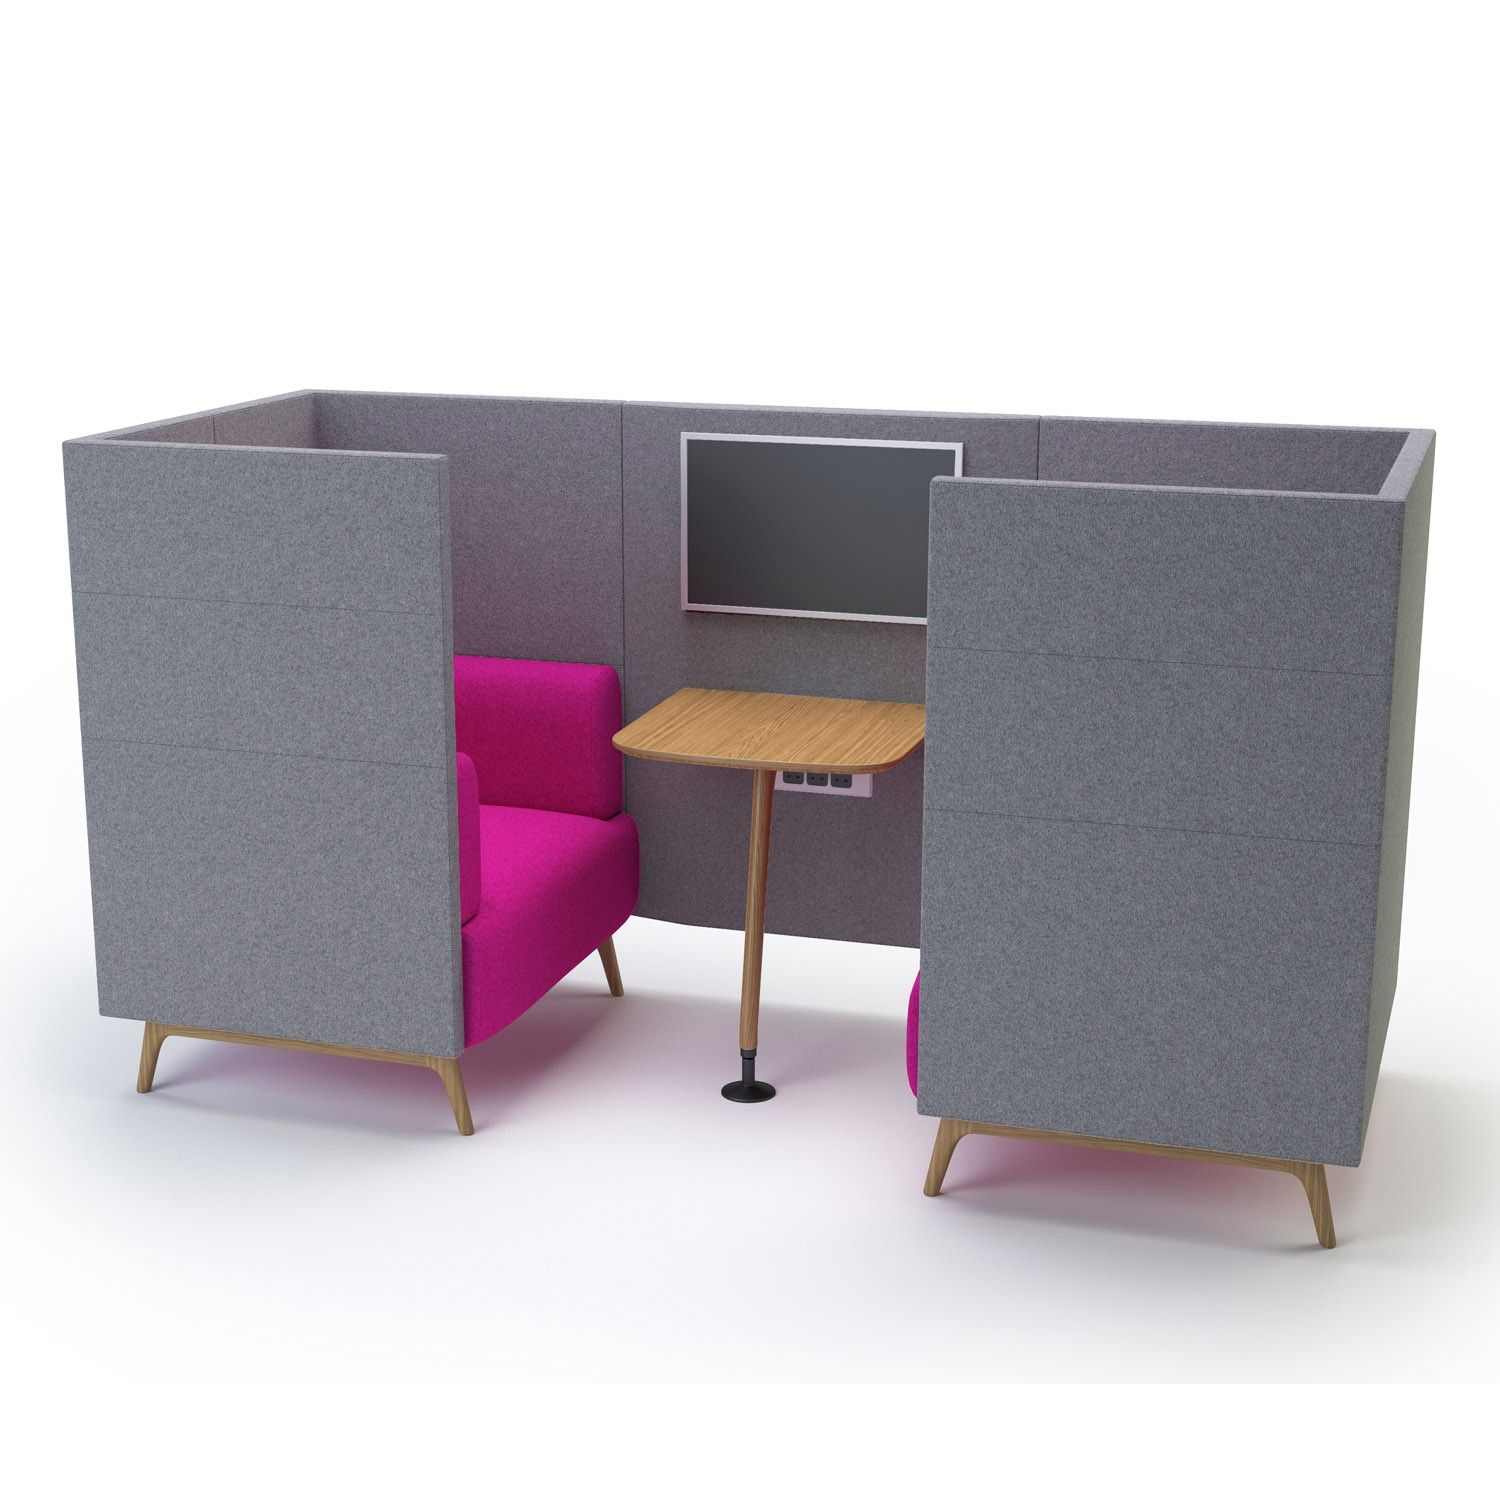 Tryst Privacy Booths Are A Modular Soft Seating Series Offering Comfortable Alternative To The Orthodox Office Sofabusiness Schoolsoft